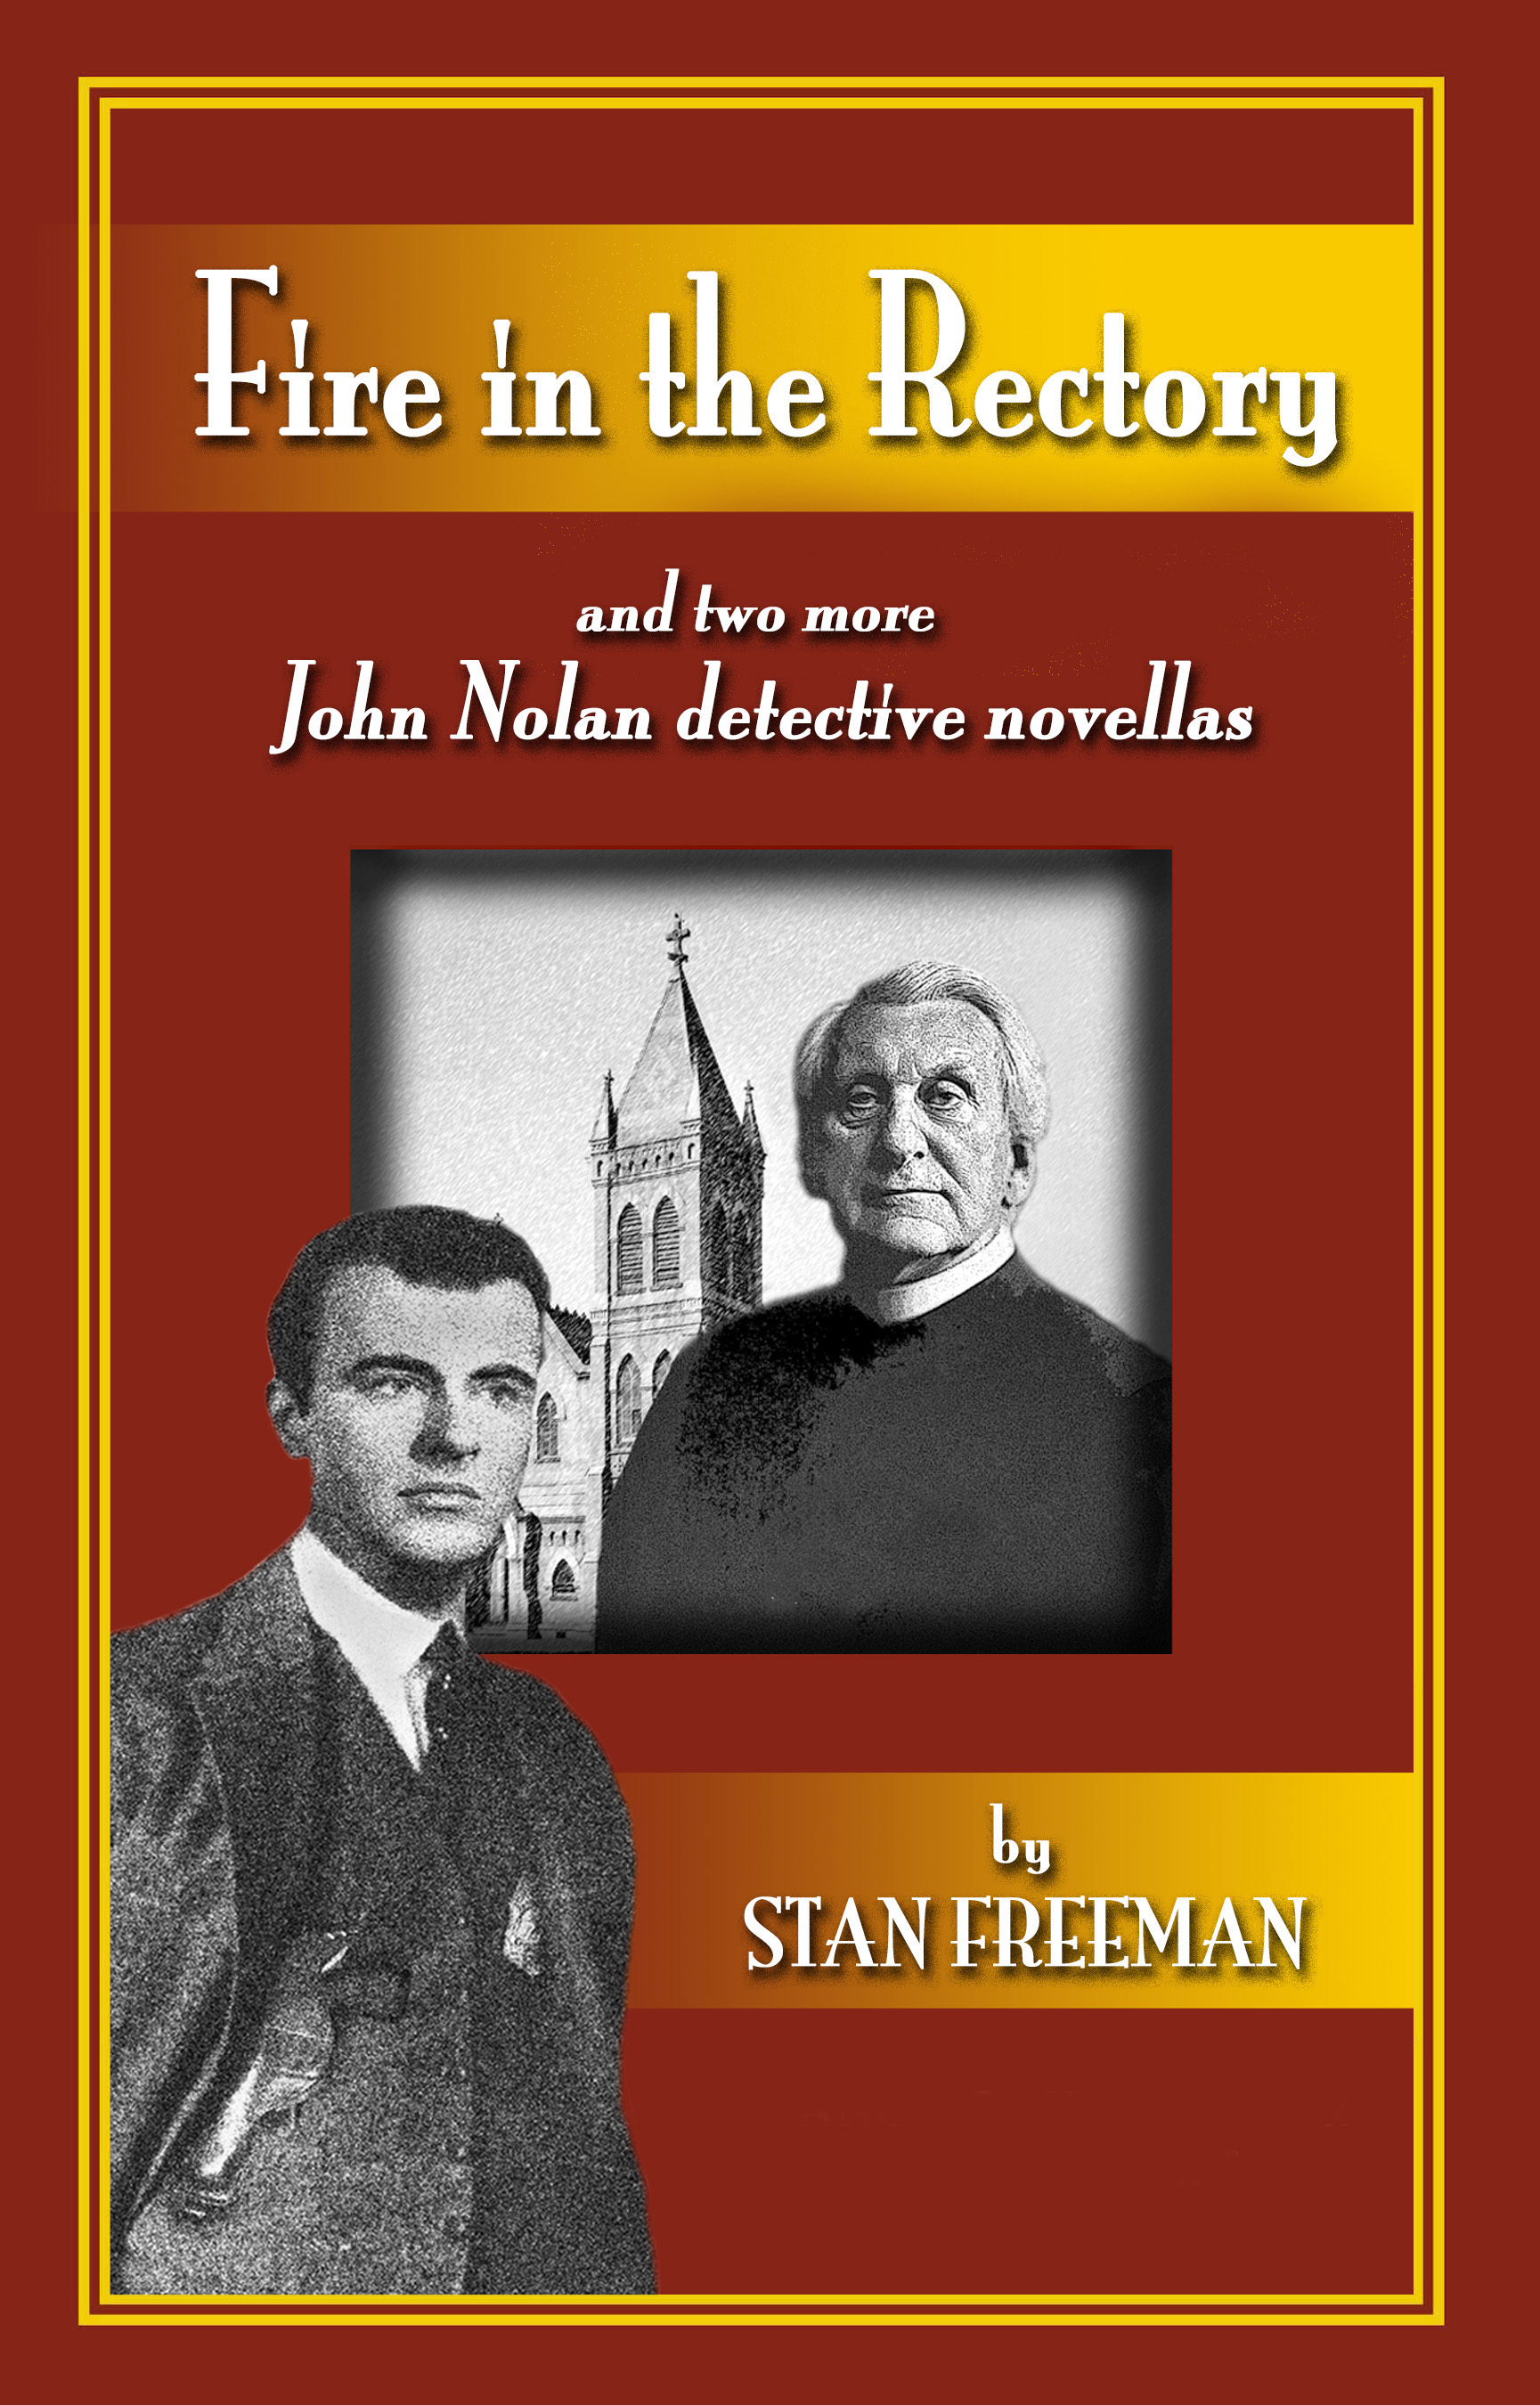 FIRE IN THE RECTORY and two more John Nolan detective novellas